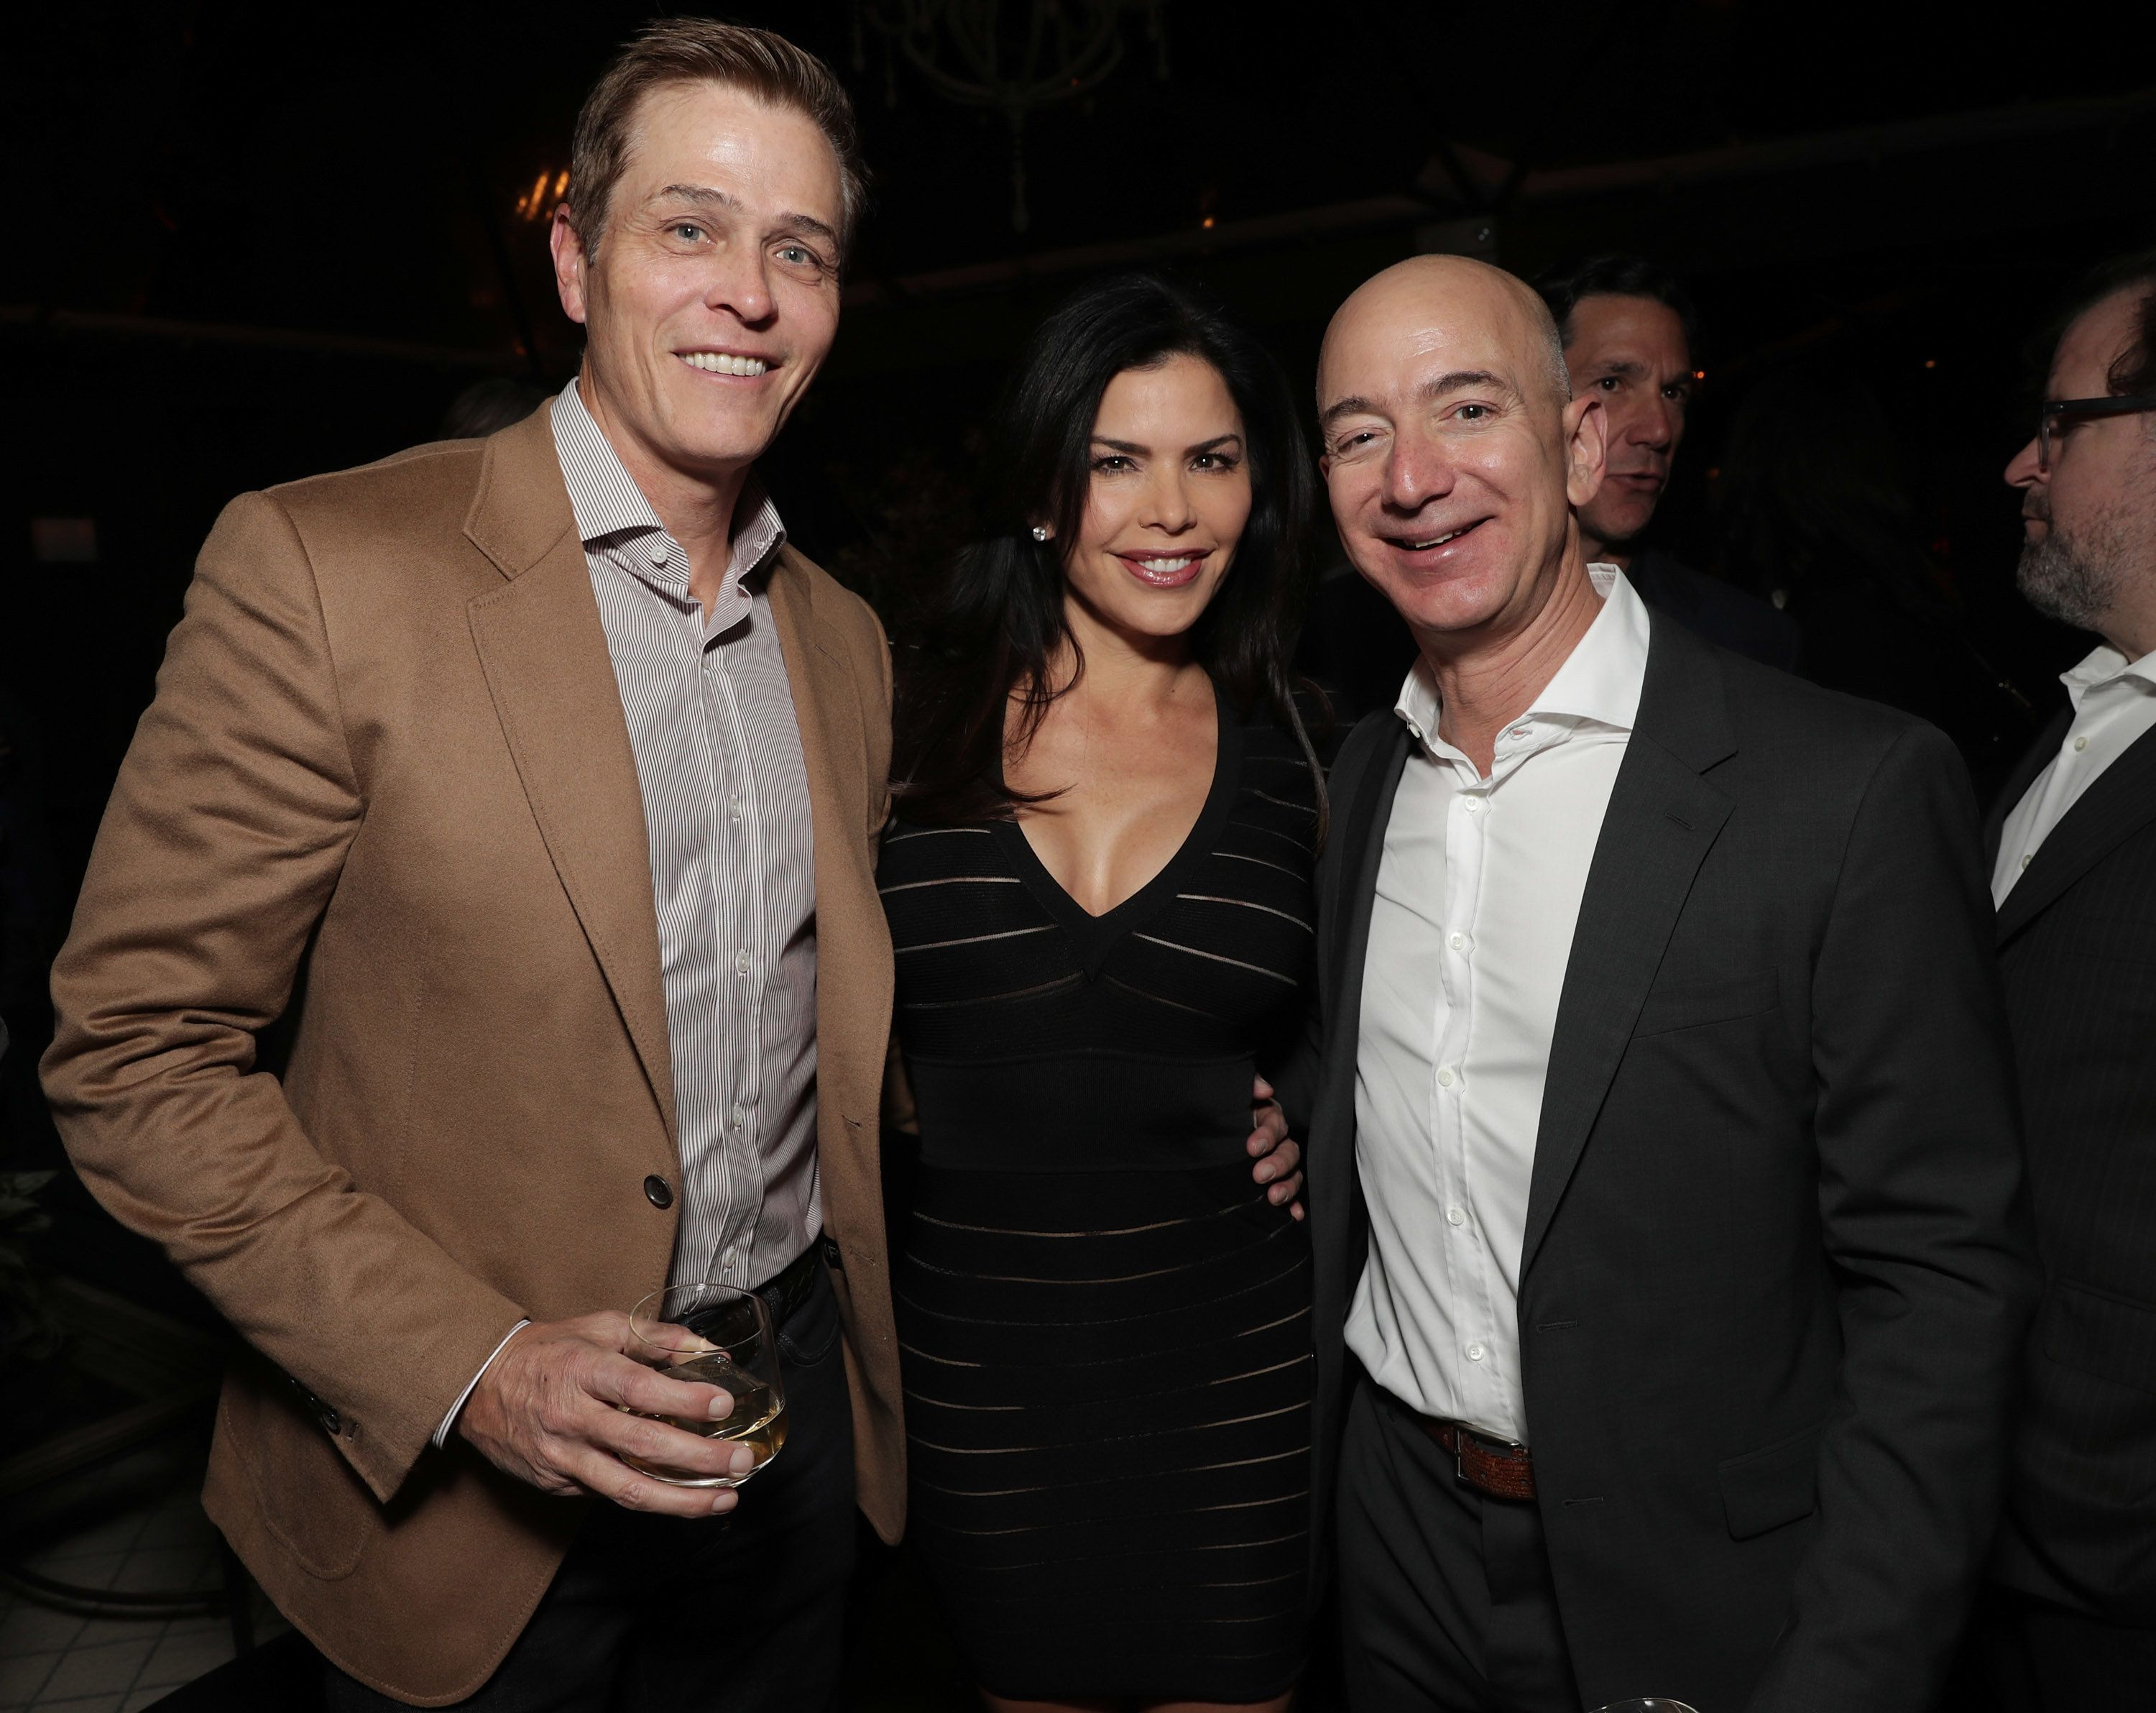 LOS ANGELES, CA - DECEMBER 03:  (EXCLUSIVE COVERAGE) WME's Patrick Whitesell, Lauren Sanchez and Amazon CEO Jeff Bezos attend Jeff Bezos and Matt Damon's 'Manchester By The Sea' Holiday Party on December 3, 2016 in Los Angeles, California.  (Photo by Todd Williamson/Getty Images for Amazon Studios)